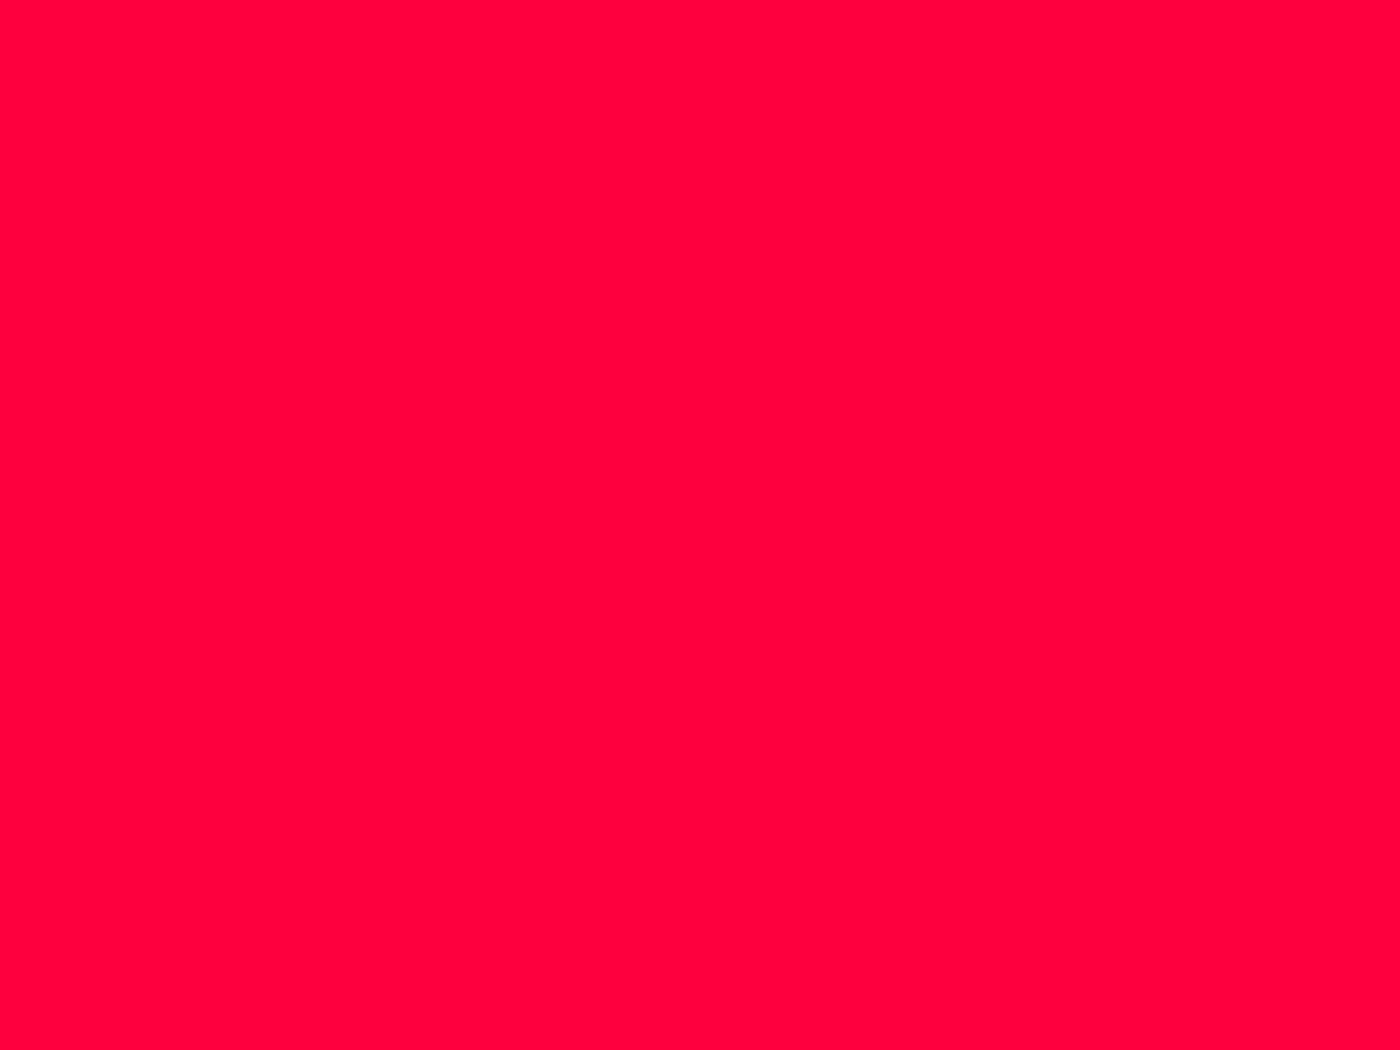 1400x1050 Electric Crimson Solid Color Background